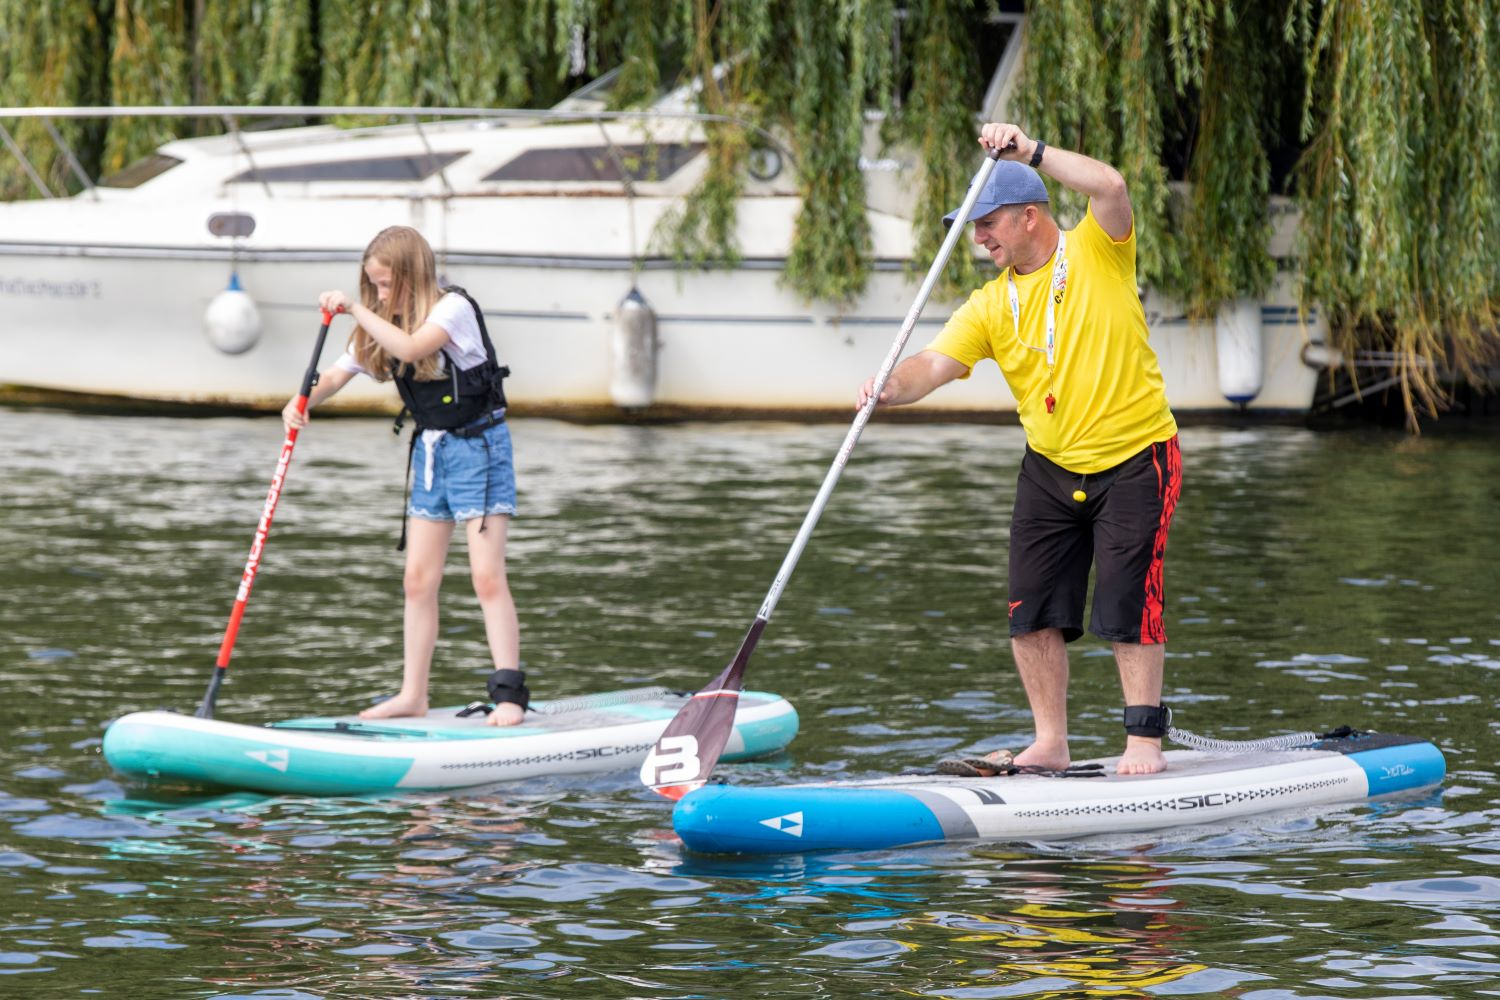 Paddleboard taster sessions